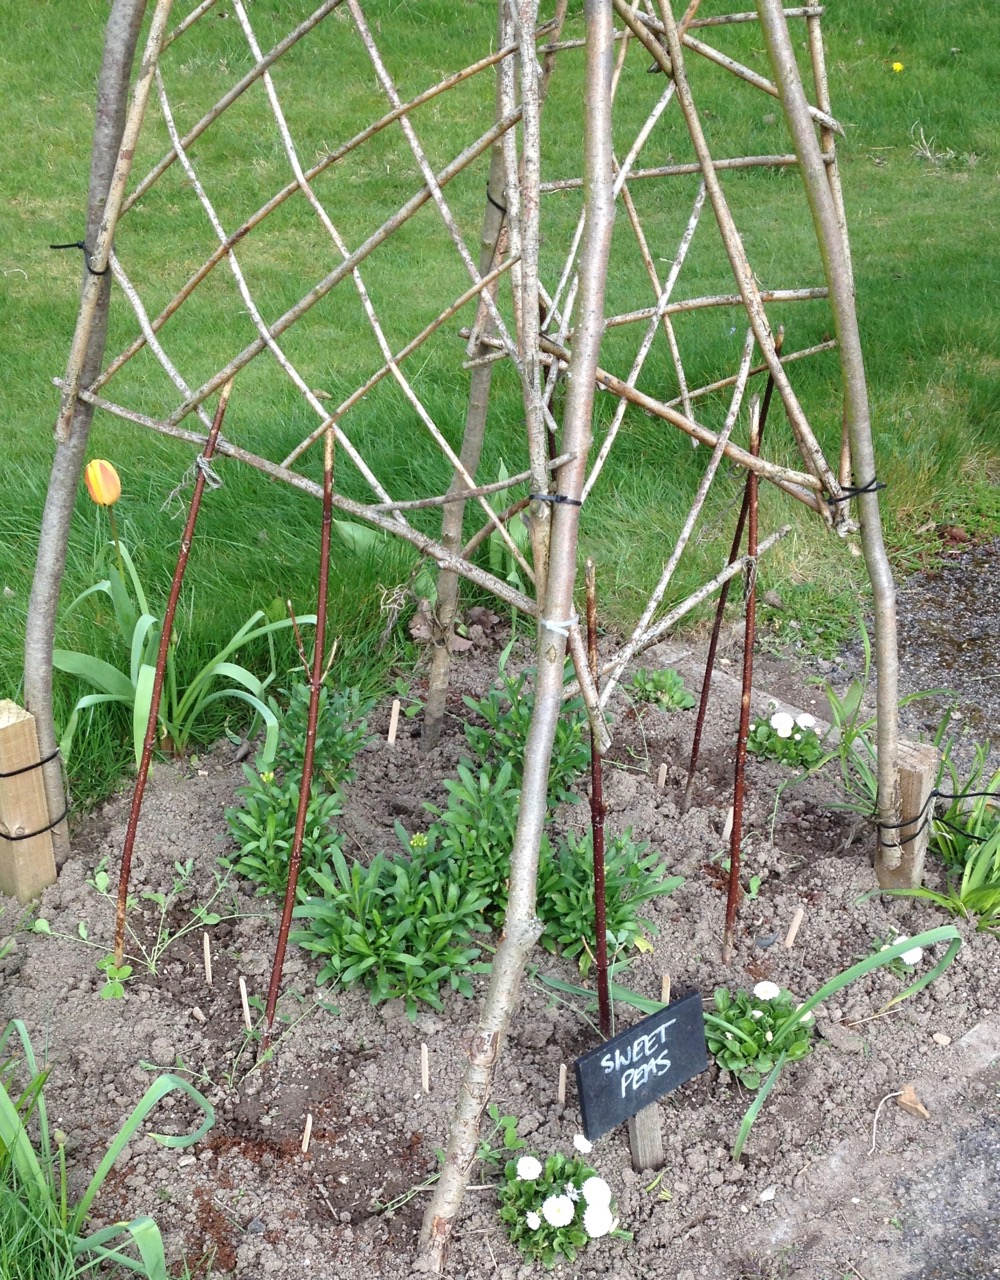 The other sweet pea wigwam, with a few bedding plants... hope they won't compete too much for resources.